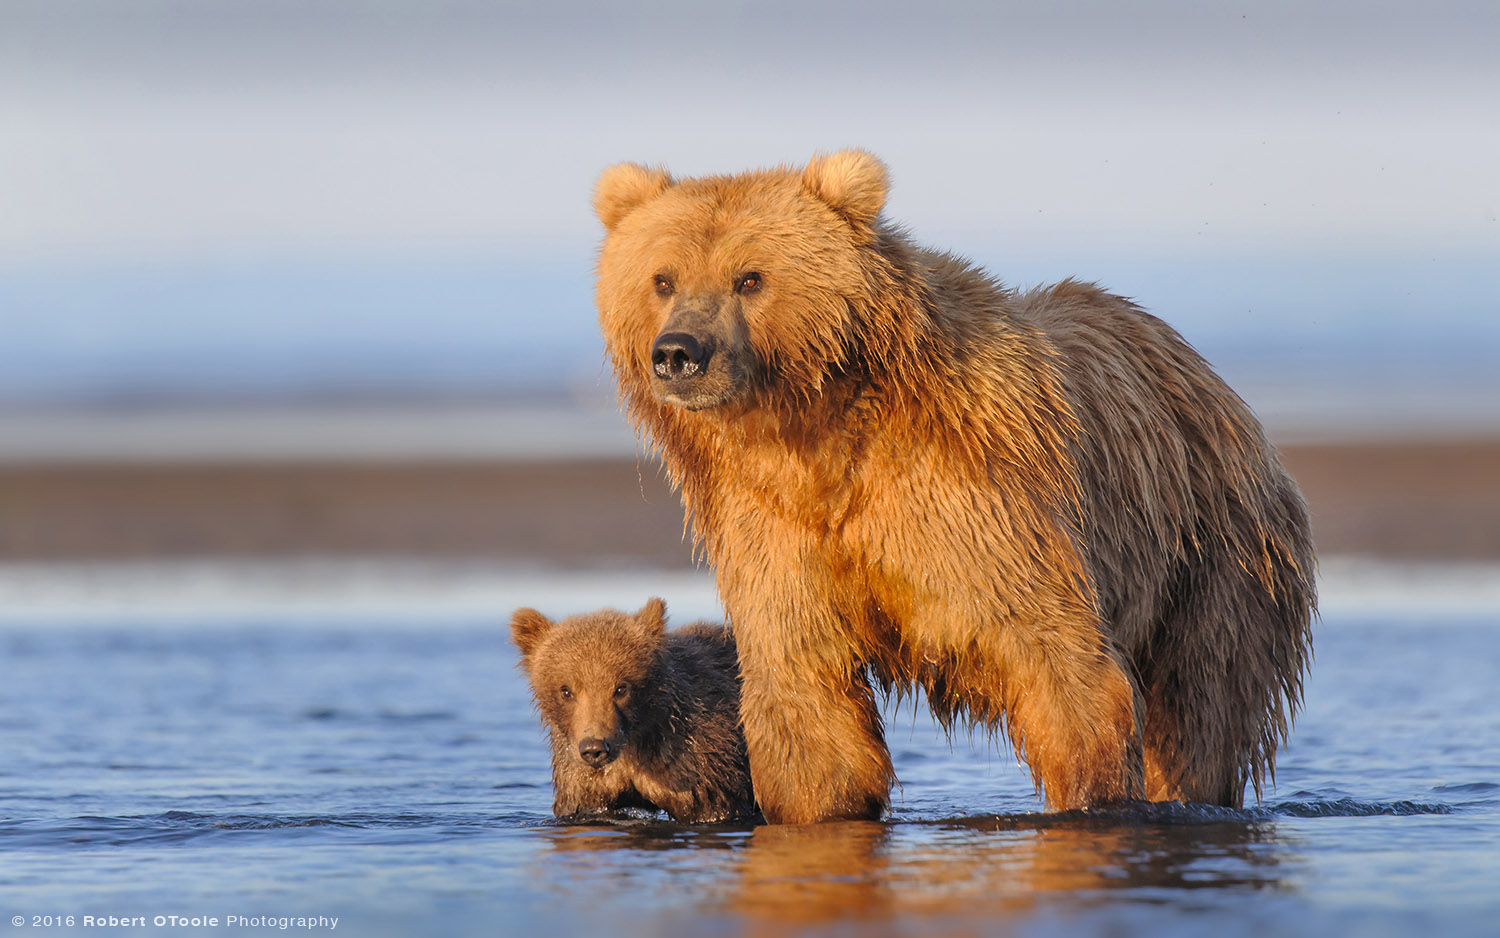 Mother-bear-and-cub-on-beach-on-perfect-morning-light-Robert-OToole-Photography